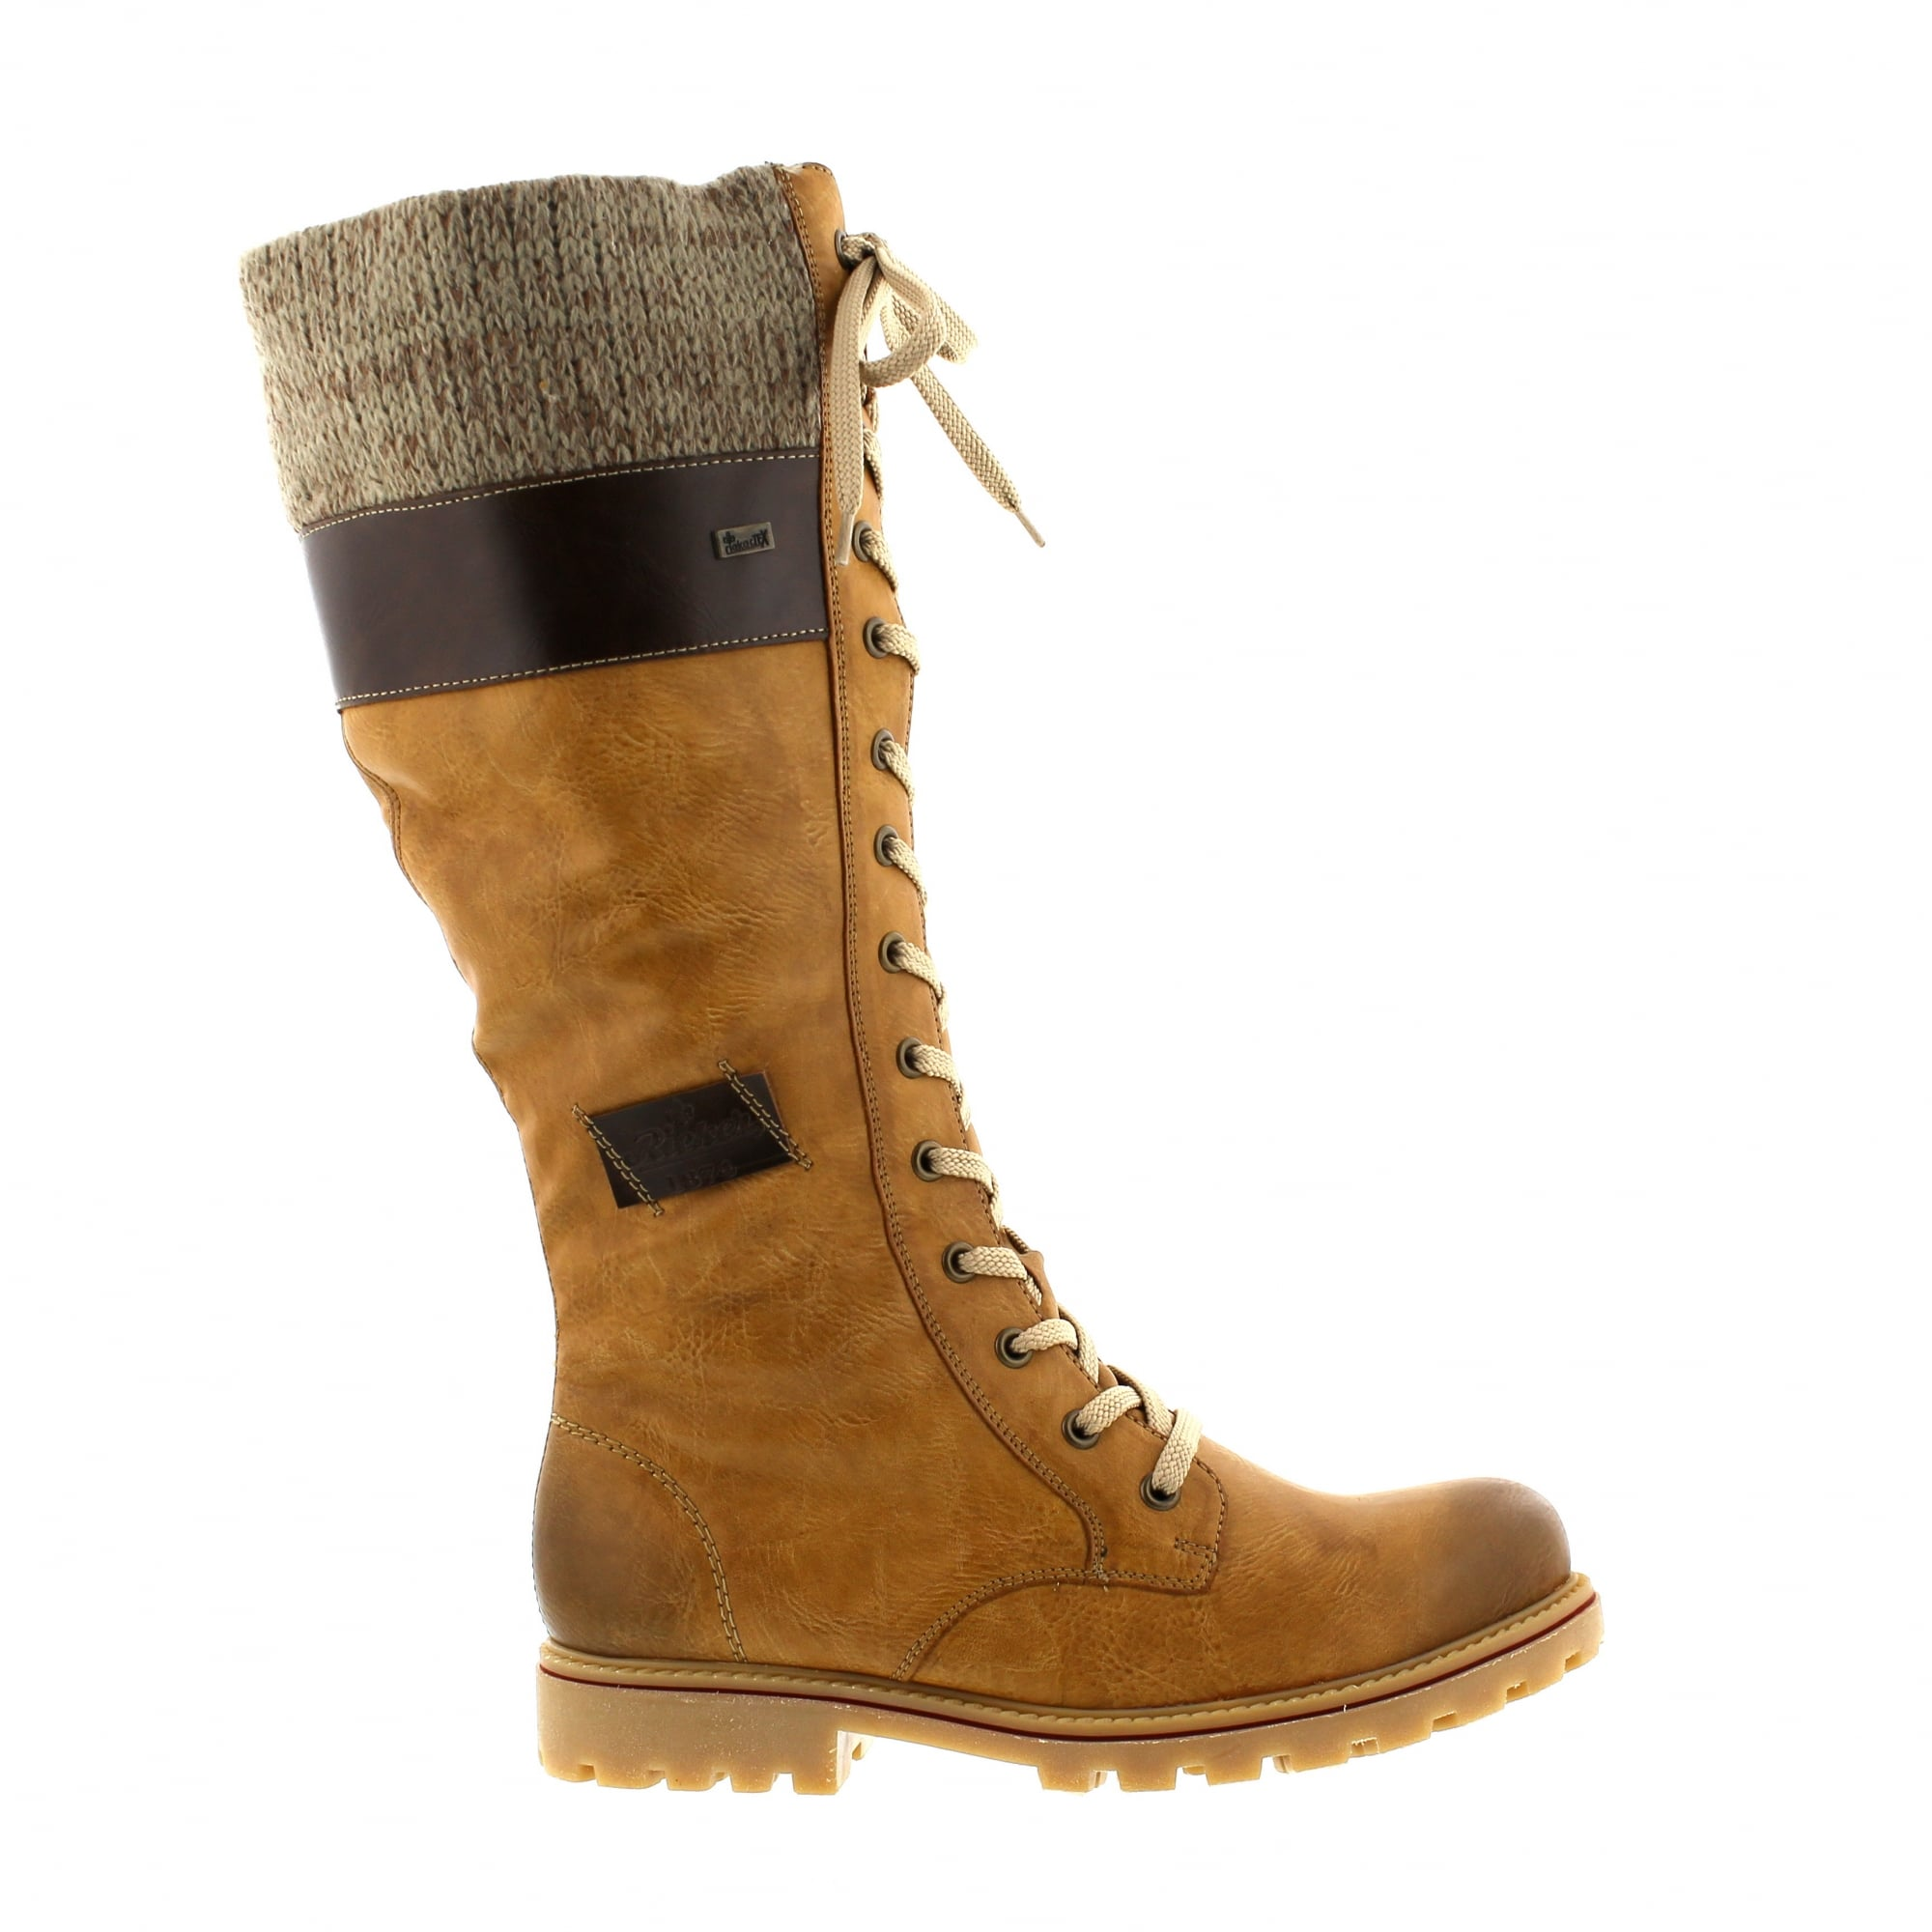 9ae7518af Rieker Z1442-24 Tan/Taupe Womens Knee High Boots | Rogerson Shoes